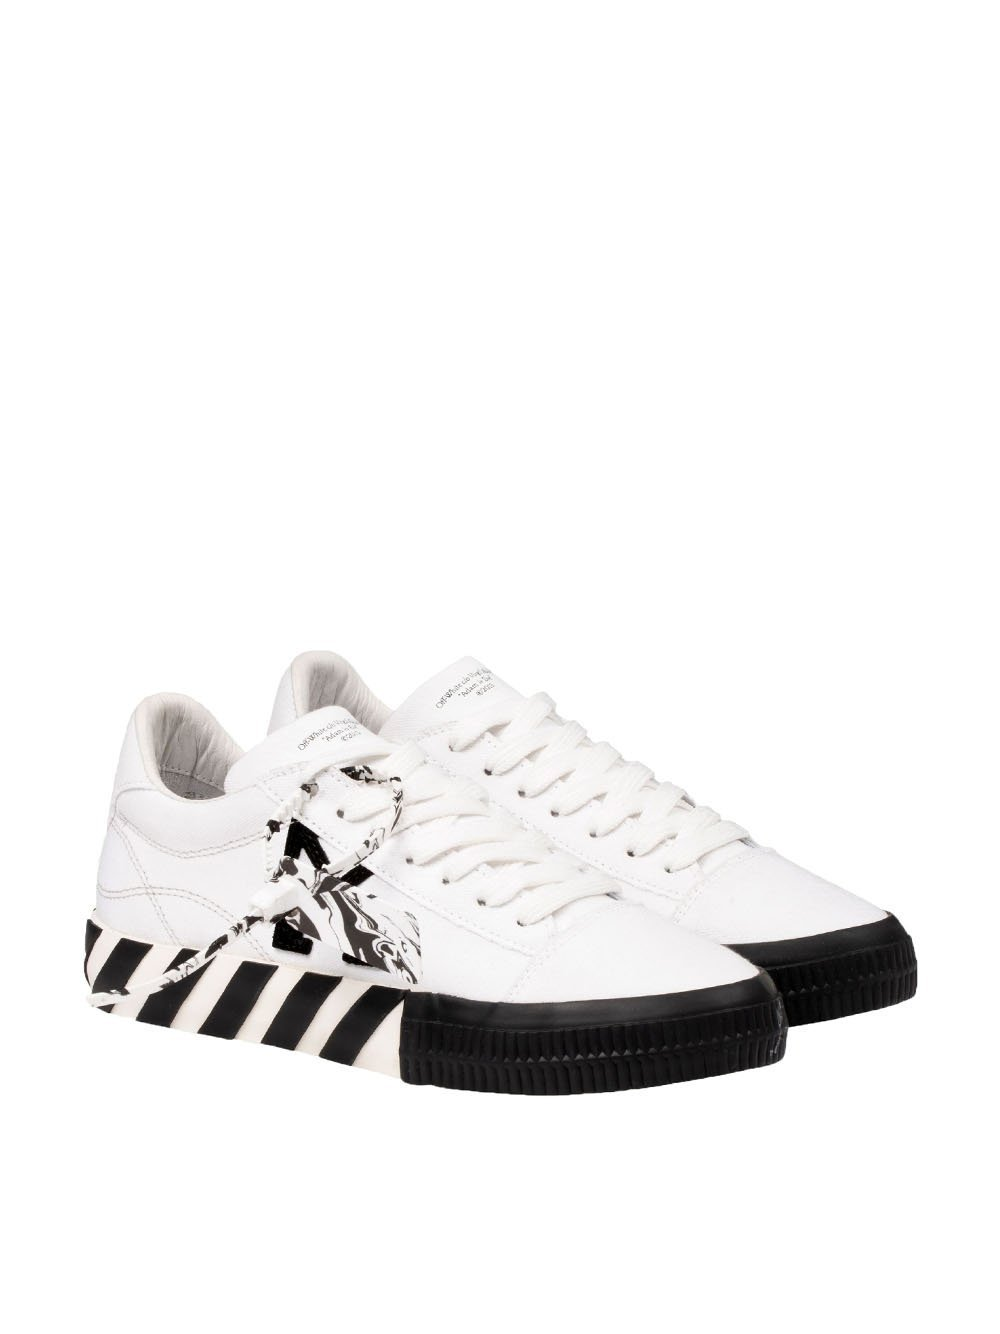 OFF-WHITE WOMEN Arrow vulcanised low-top sneakers White/Black